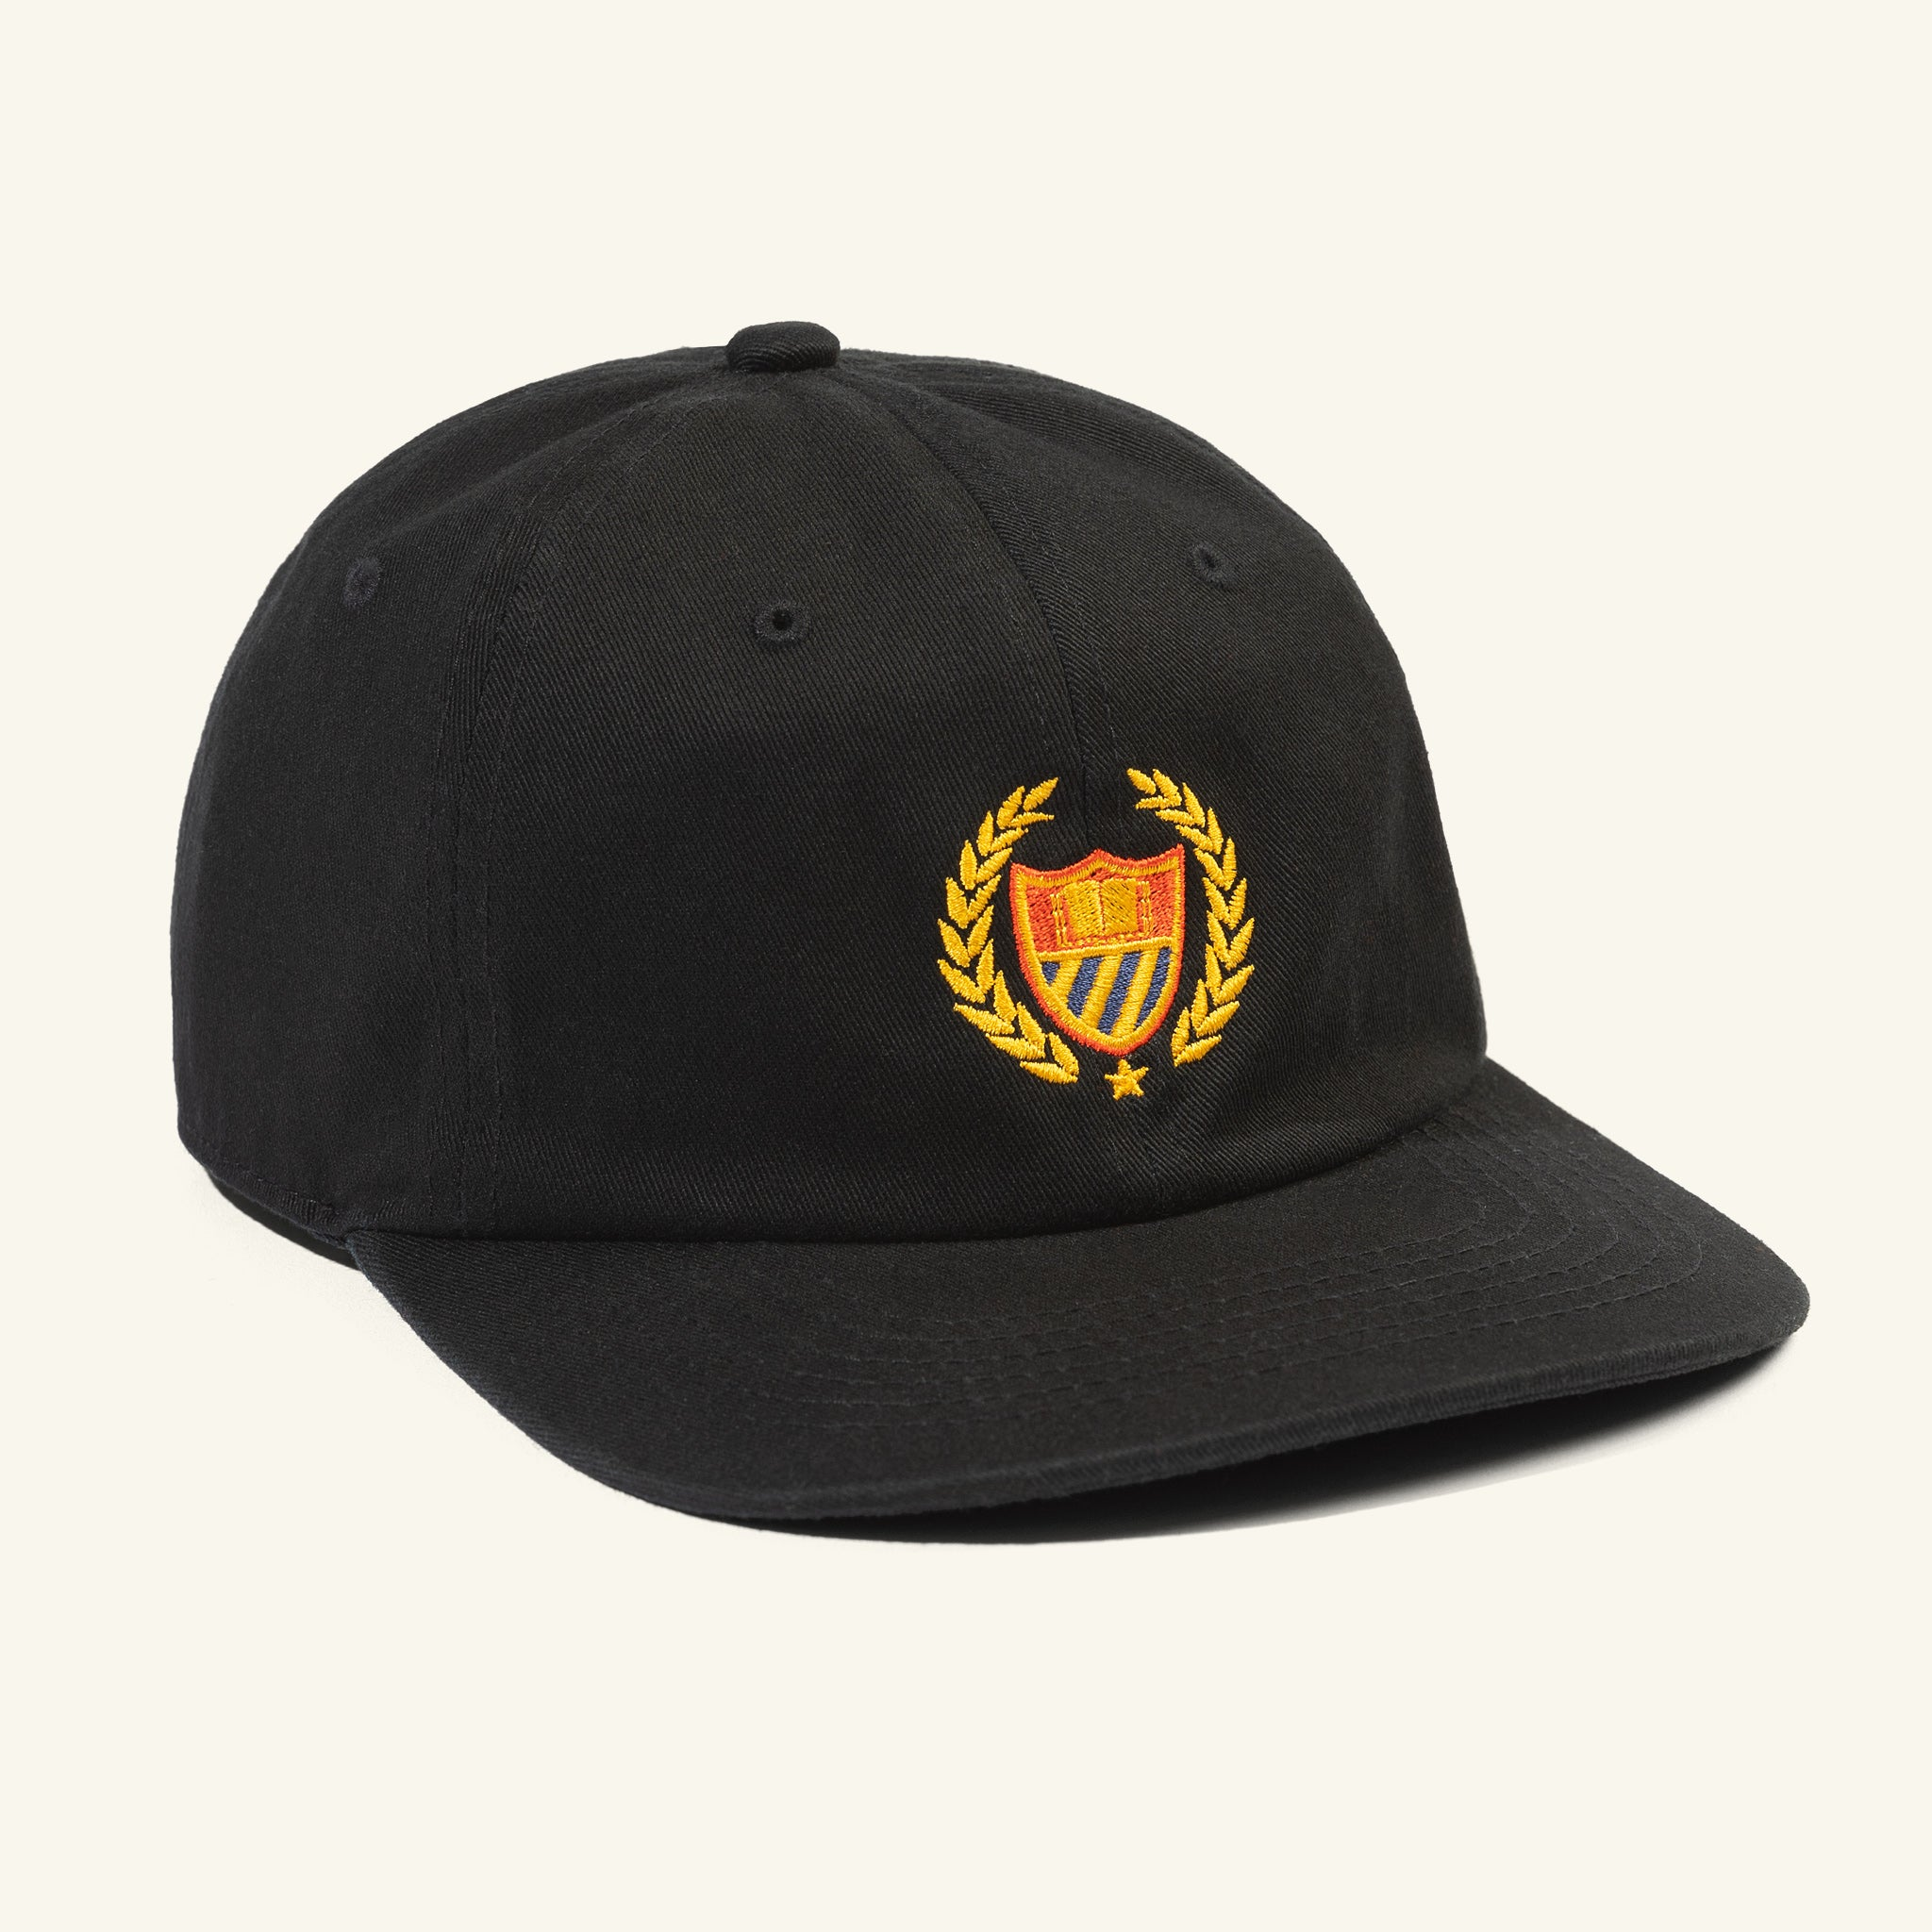 Academy 6 Panel Hat Black Image  #1